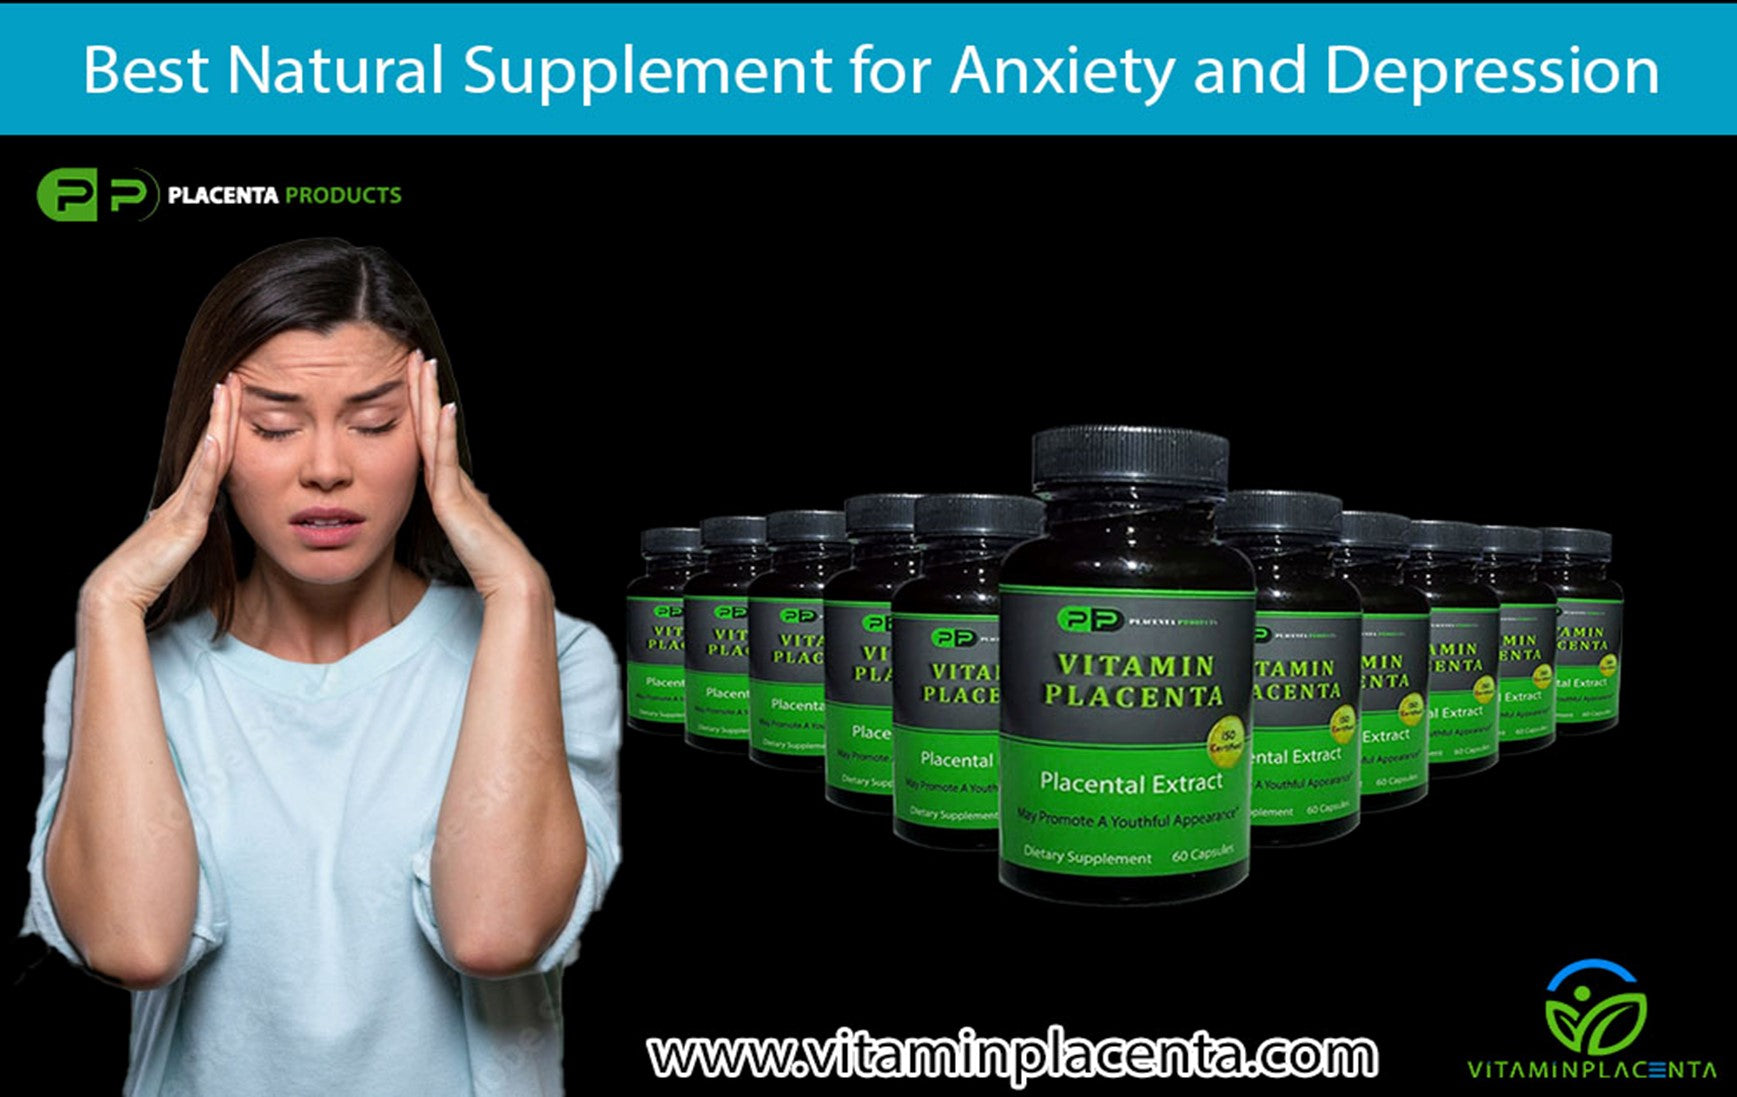 Best Natural Supplement for Anxiety and Depression